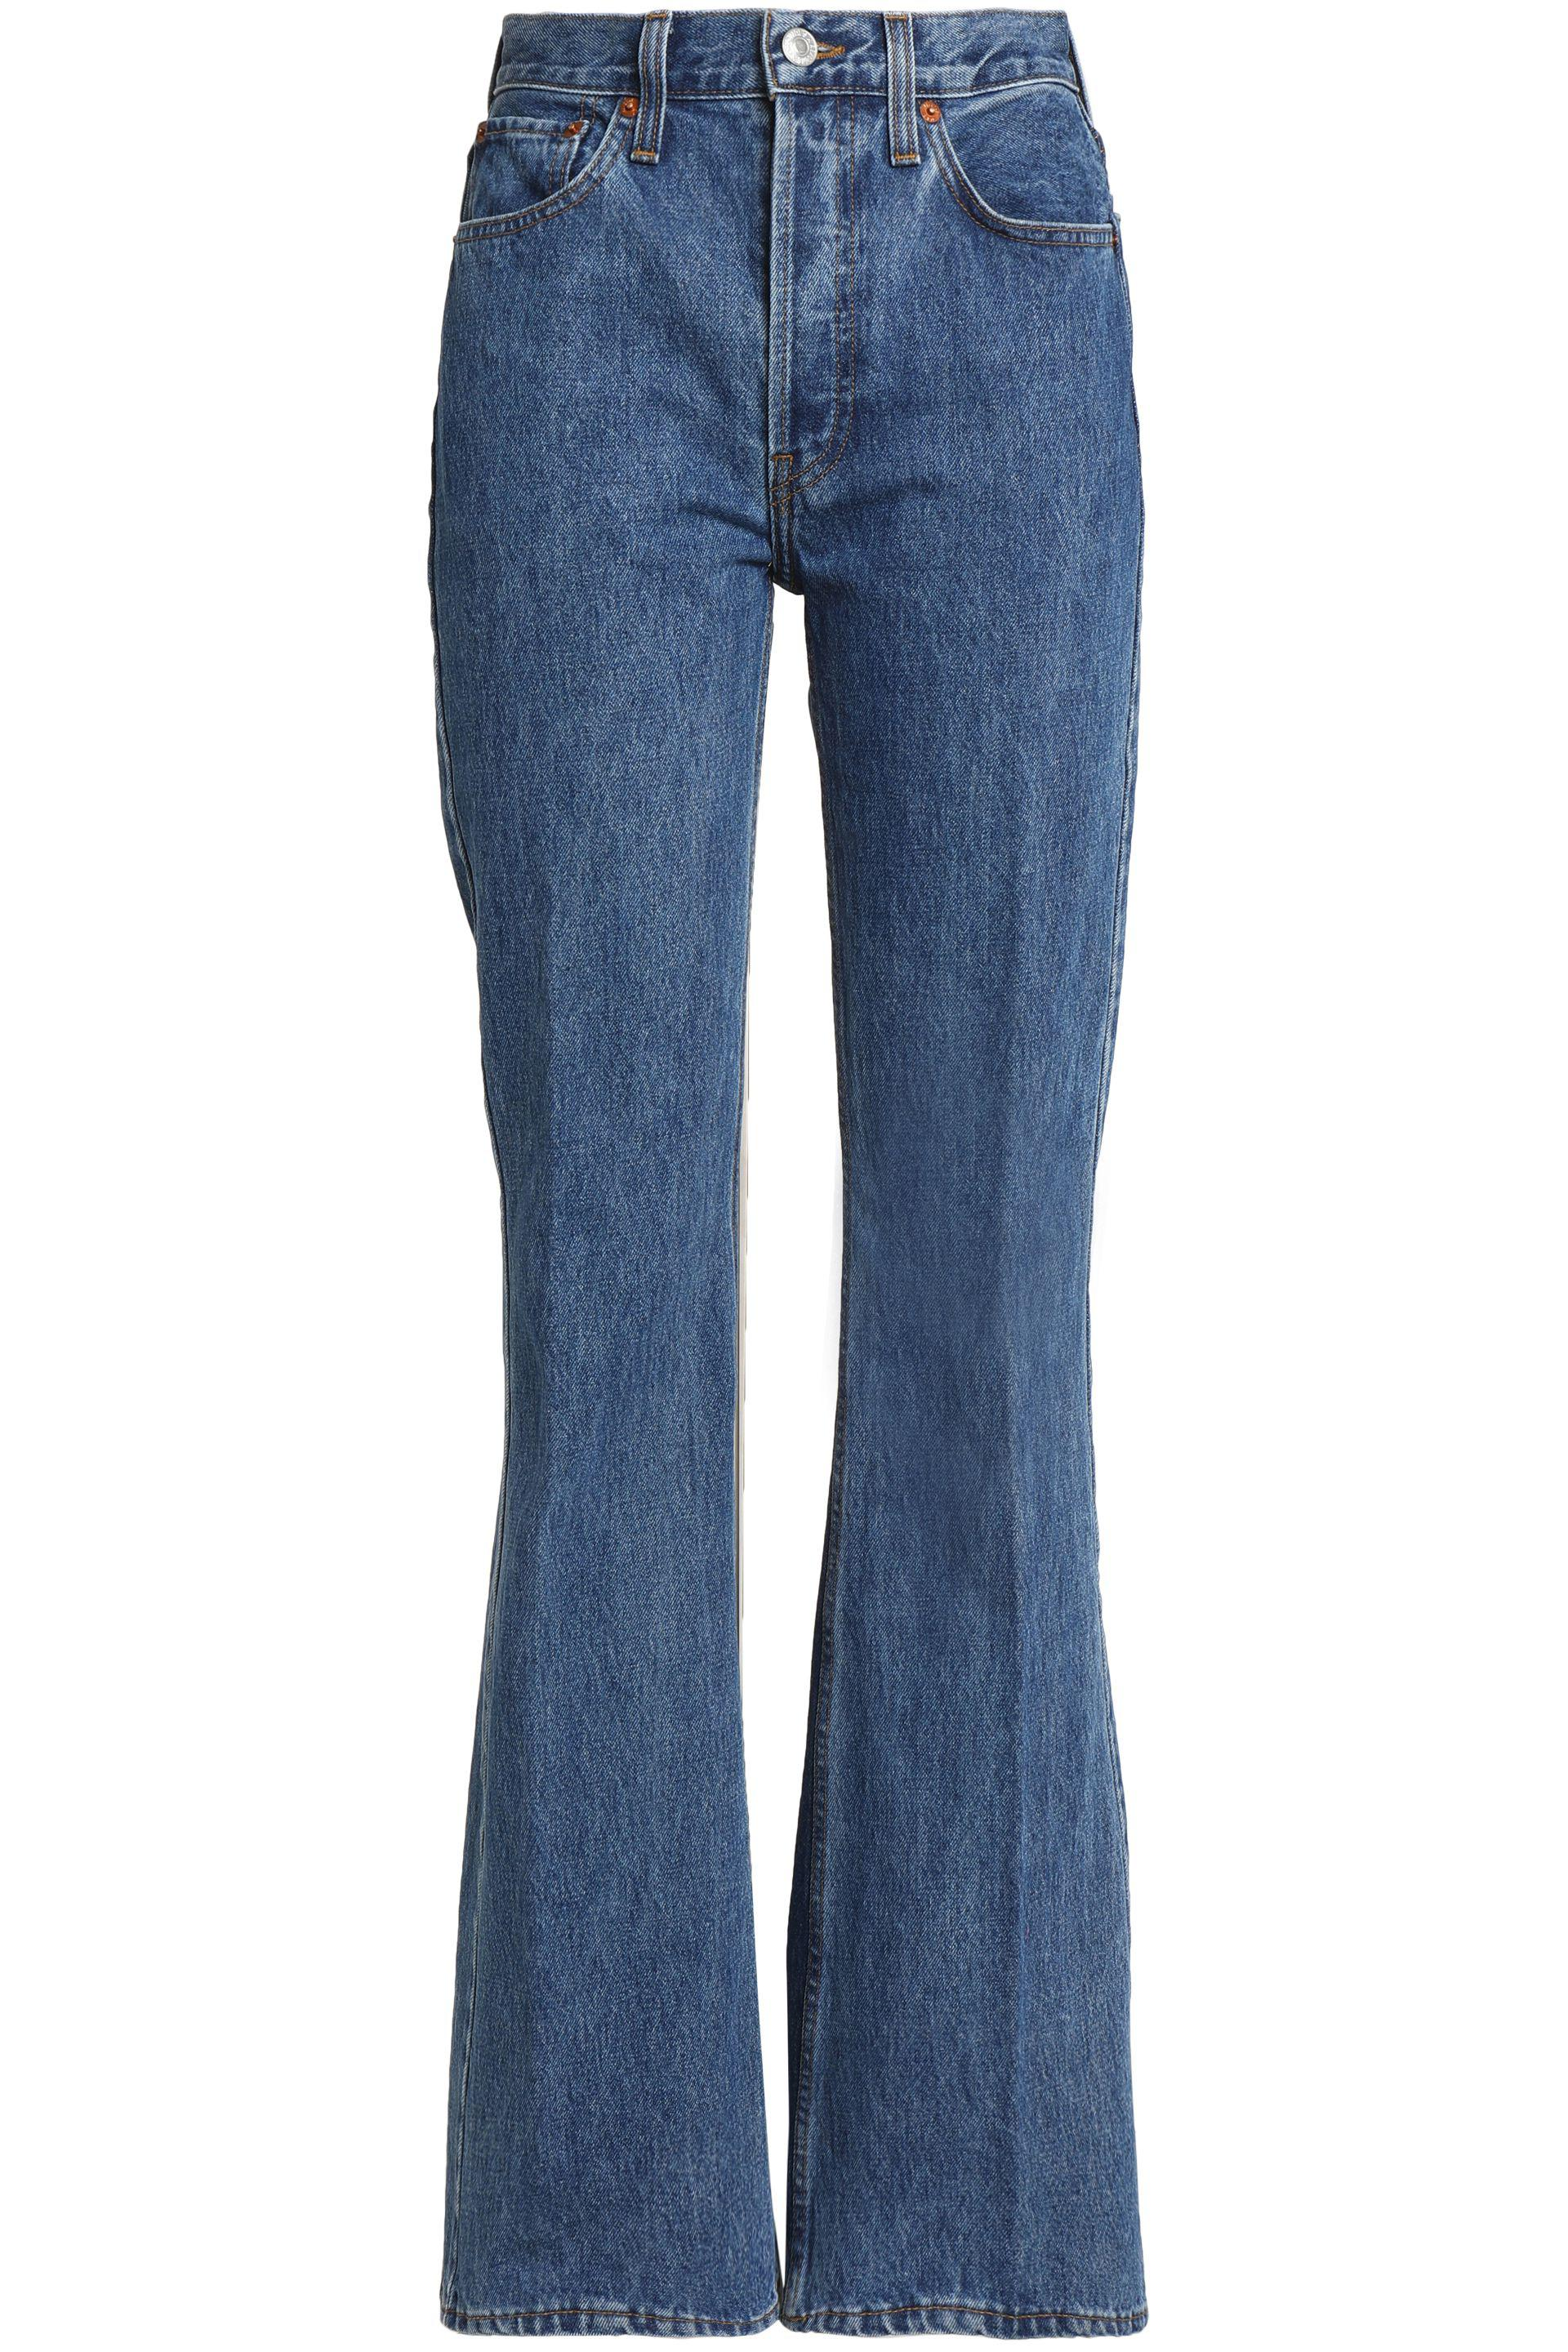 1a02fd55a8d RE/DONE High-rise Bootcut Jeans Mid Denim in Blue - Lyst